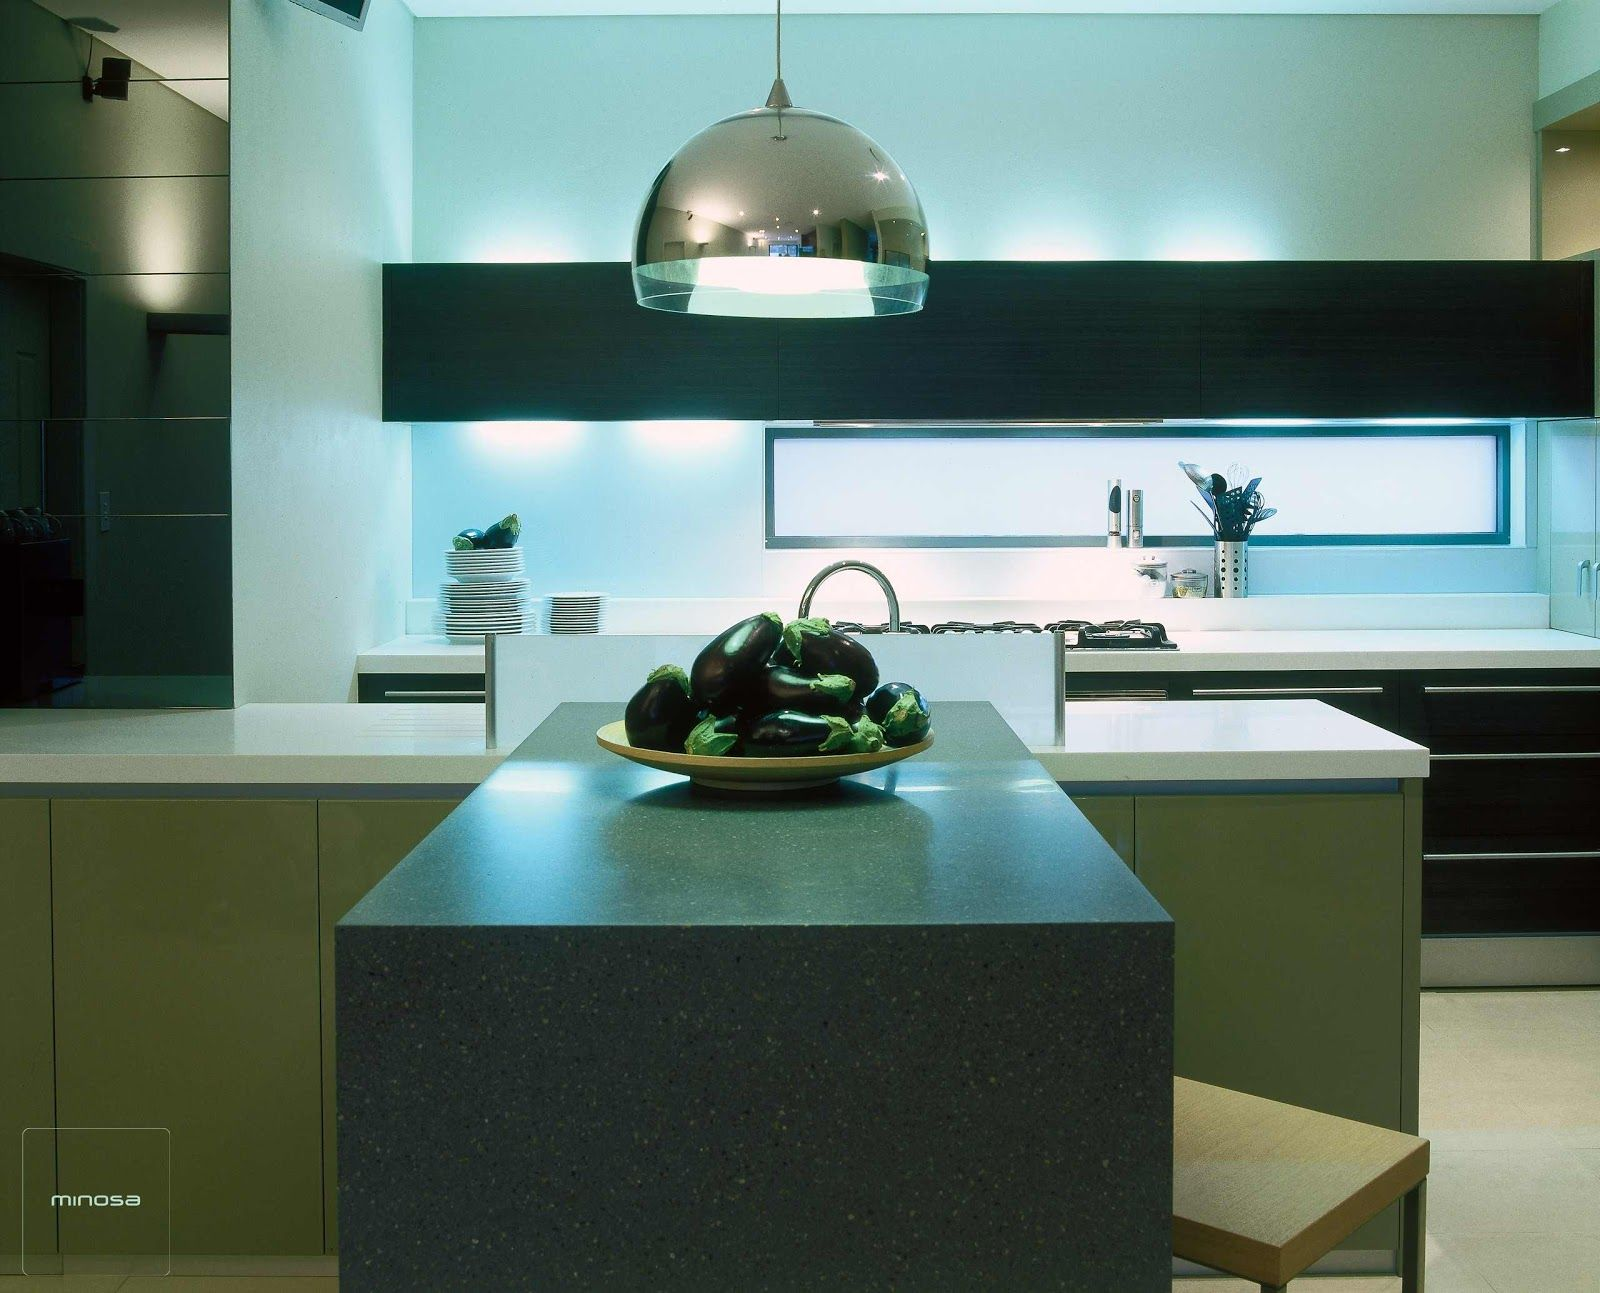 t shaped kitchen island google search kitchen design small space kitchen island with sink on t kitchen ideas id=39371